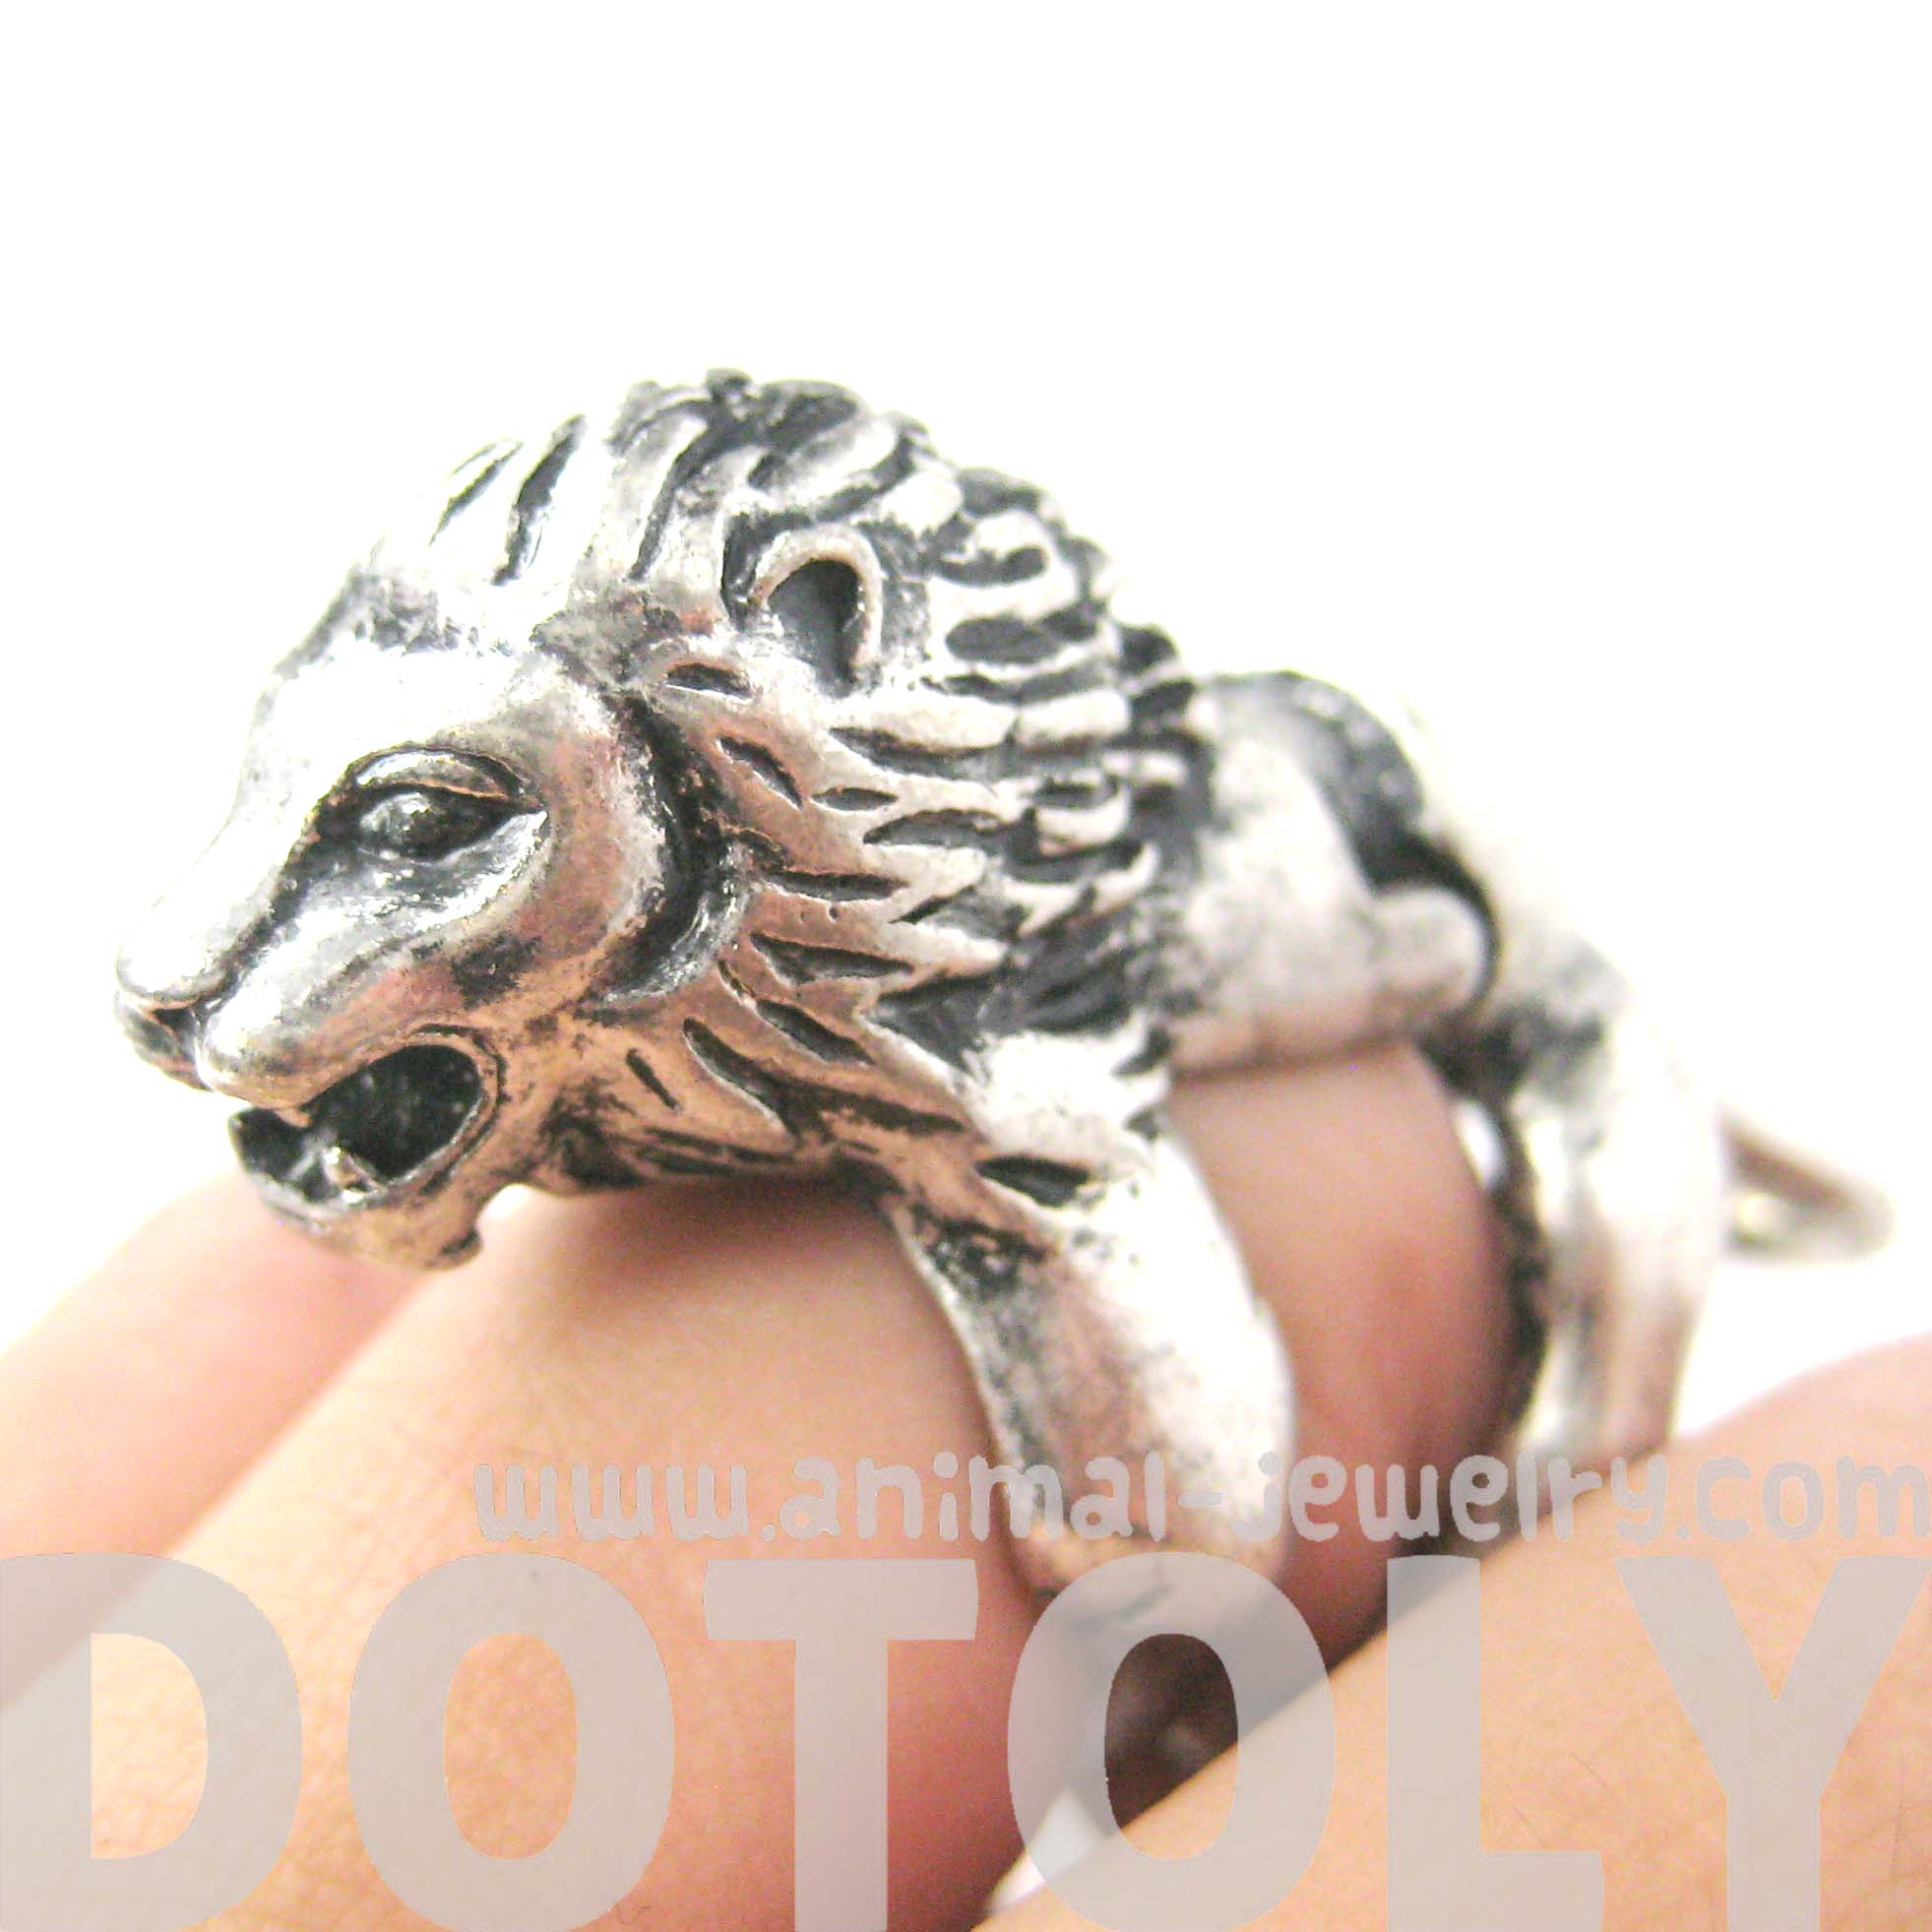 Detailed lion shaped animal armor joint knuckle ring in silver detailed lion shaped animal armor joint knuckle ring in silver sizes 5 to 9 nvjuhfo Image collections